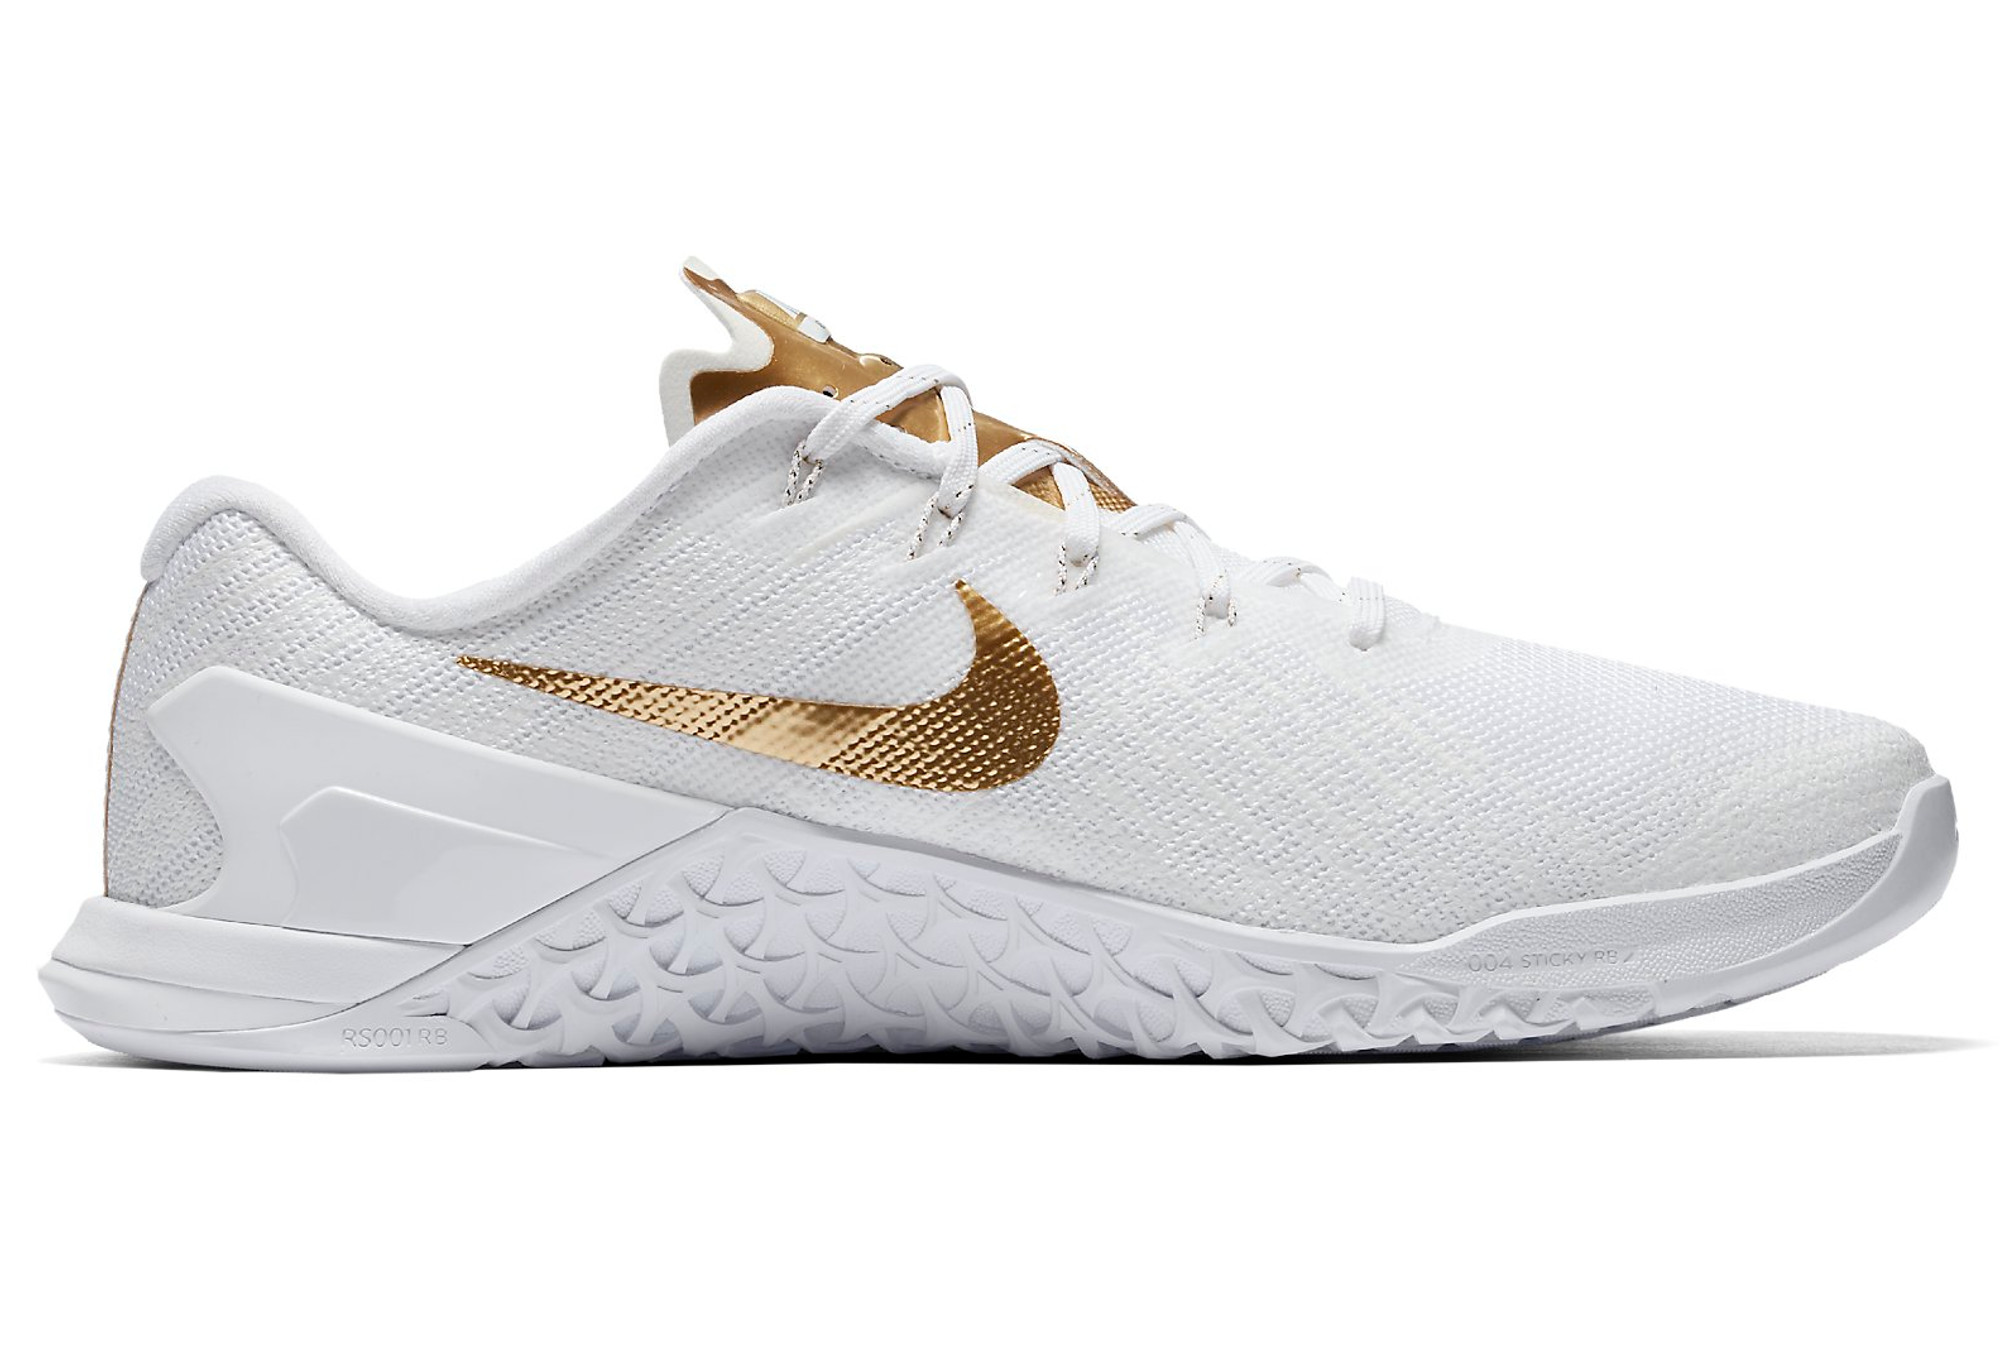 chaussures de cross training femme nike metcon 3 amp blanc or. Black Bedroom Furniture Sets. Home Design Ideas